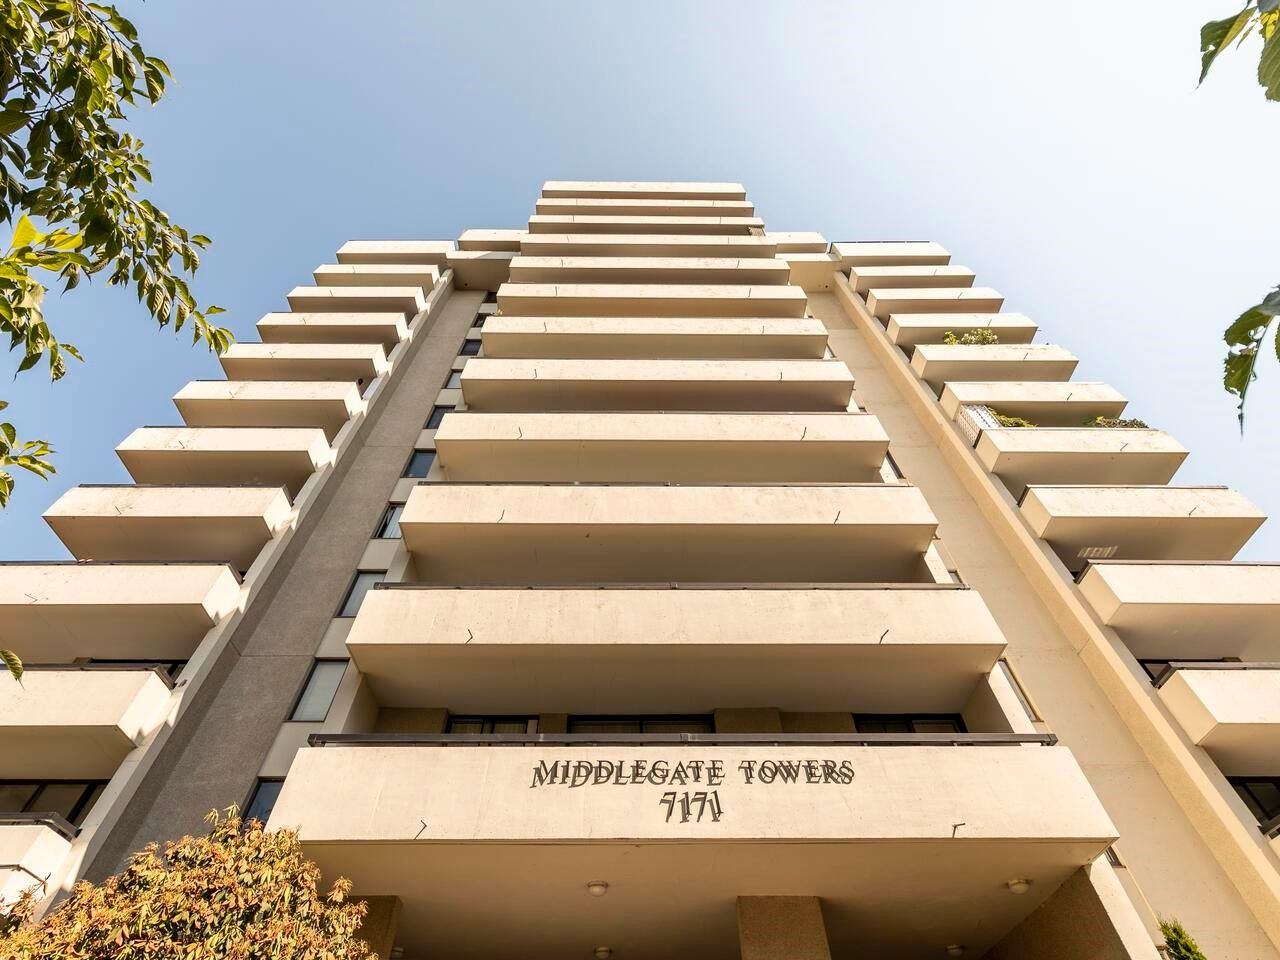 """Main Photo: 305 7171 BERESFORD Street in Burnaby: Highgate Condo for sale in """"MIDDLEGATE TOWERS"""" (Burnaby South)  : MLS®# R2600978"""